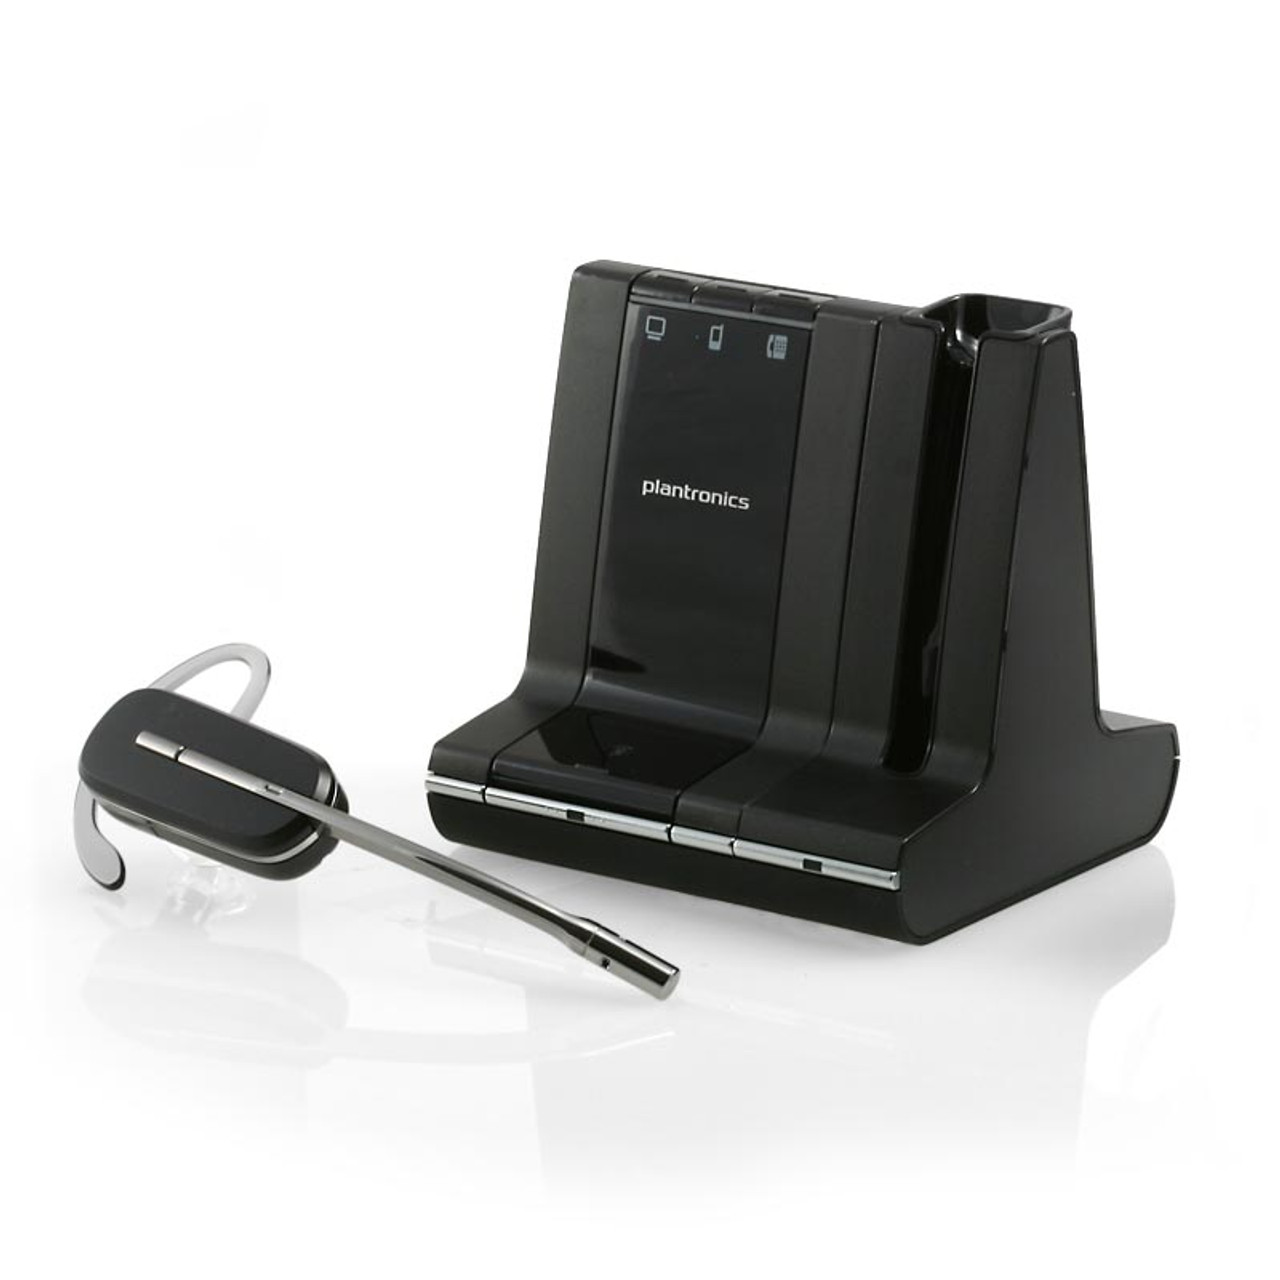 Savi W740 83452 01 Multi Use Wireless Bluetooth Headset For Pc Mobile Smartphone Ipad Iphone Android Windows Tablet And Desk Phone Connect All Your Office Devices To One Headset Savi Plantronics Wireless Savi